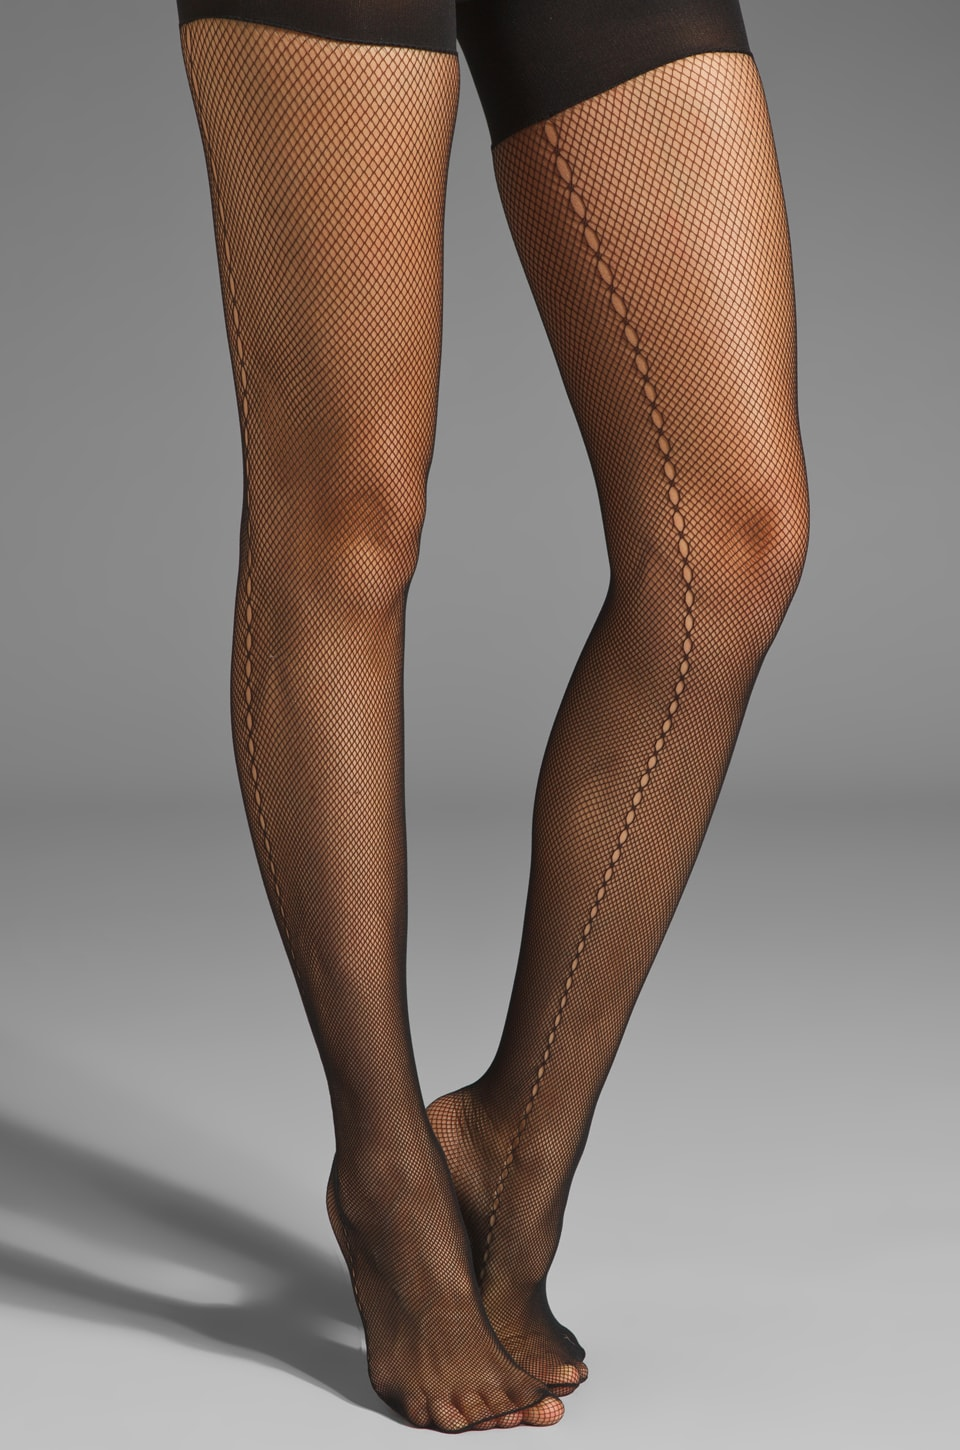 SPANX Side Seam Fishnet Tights in Black